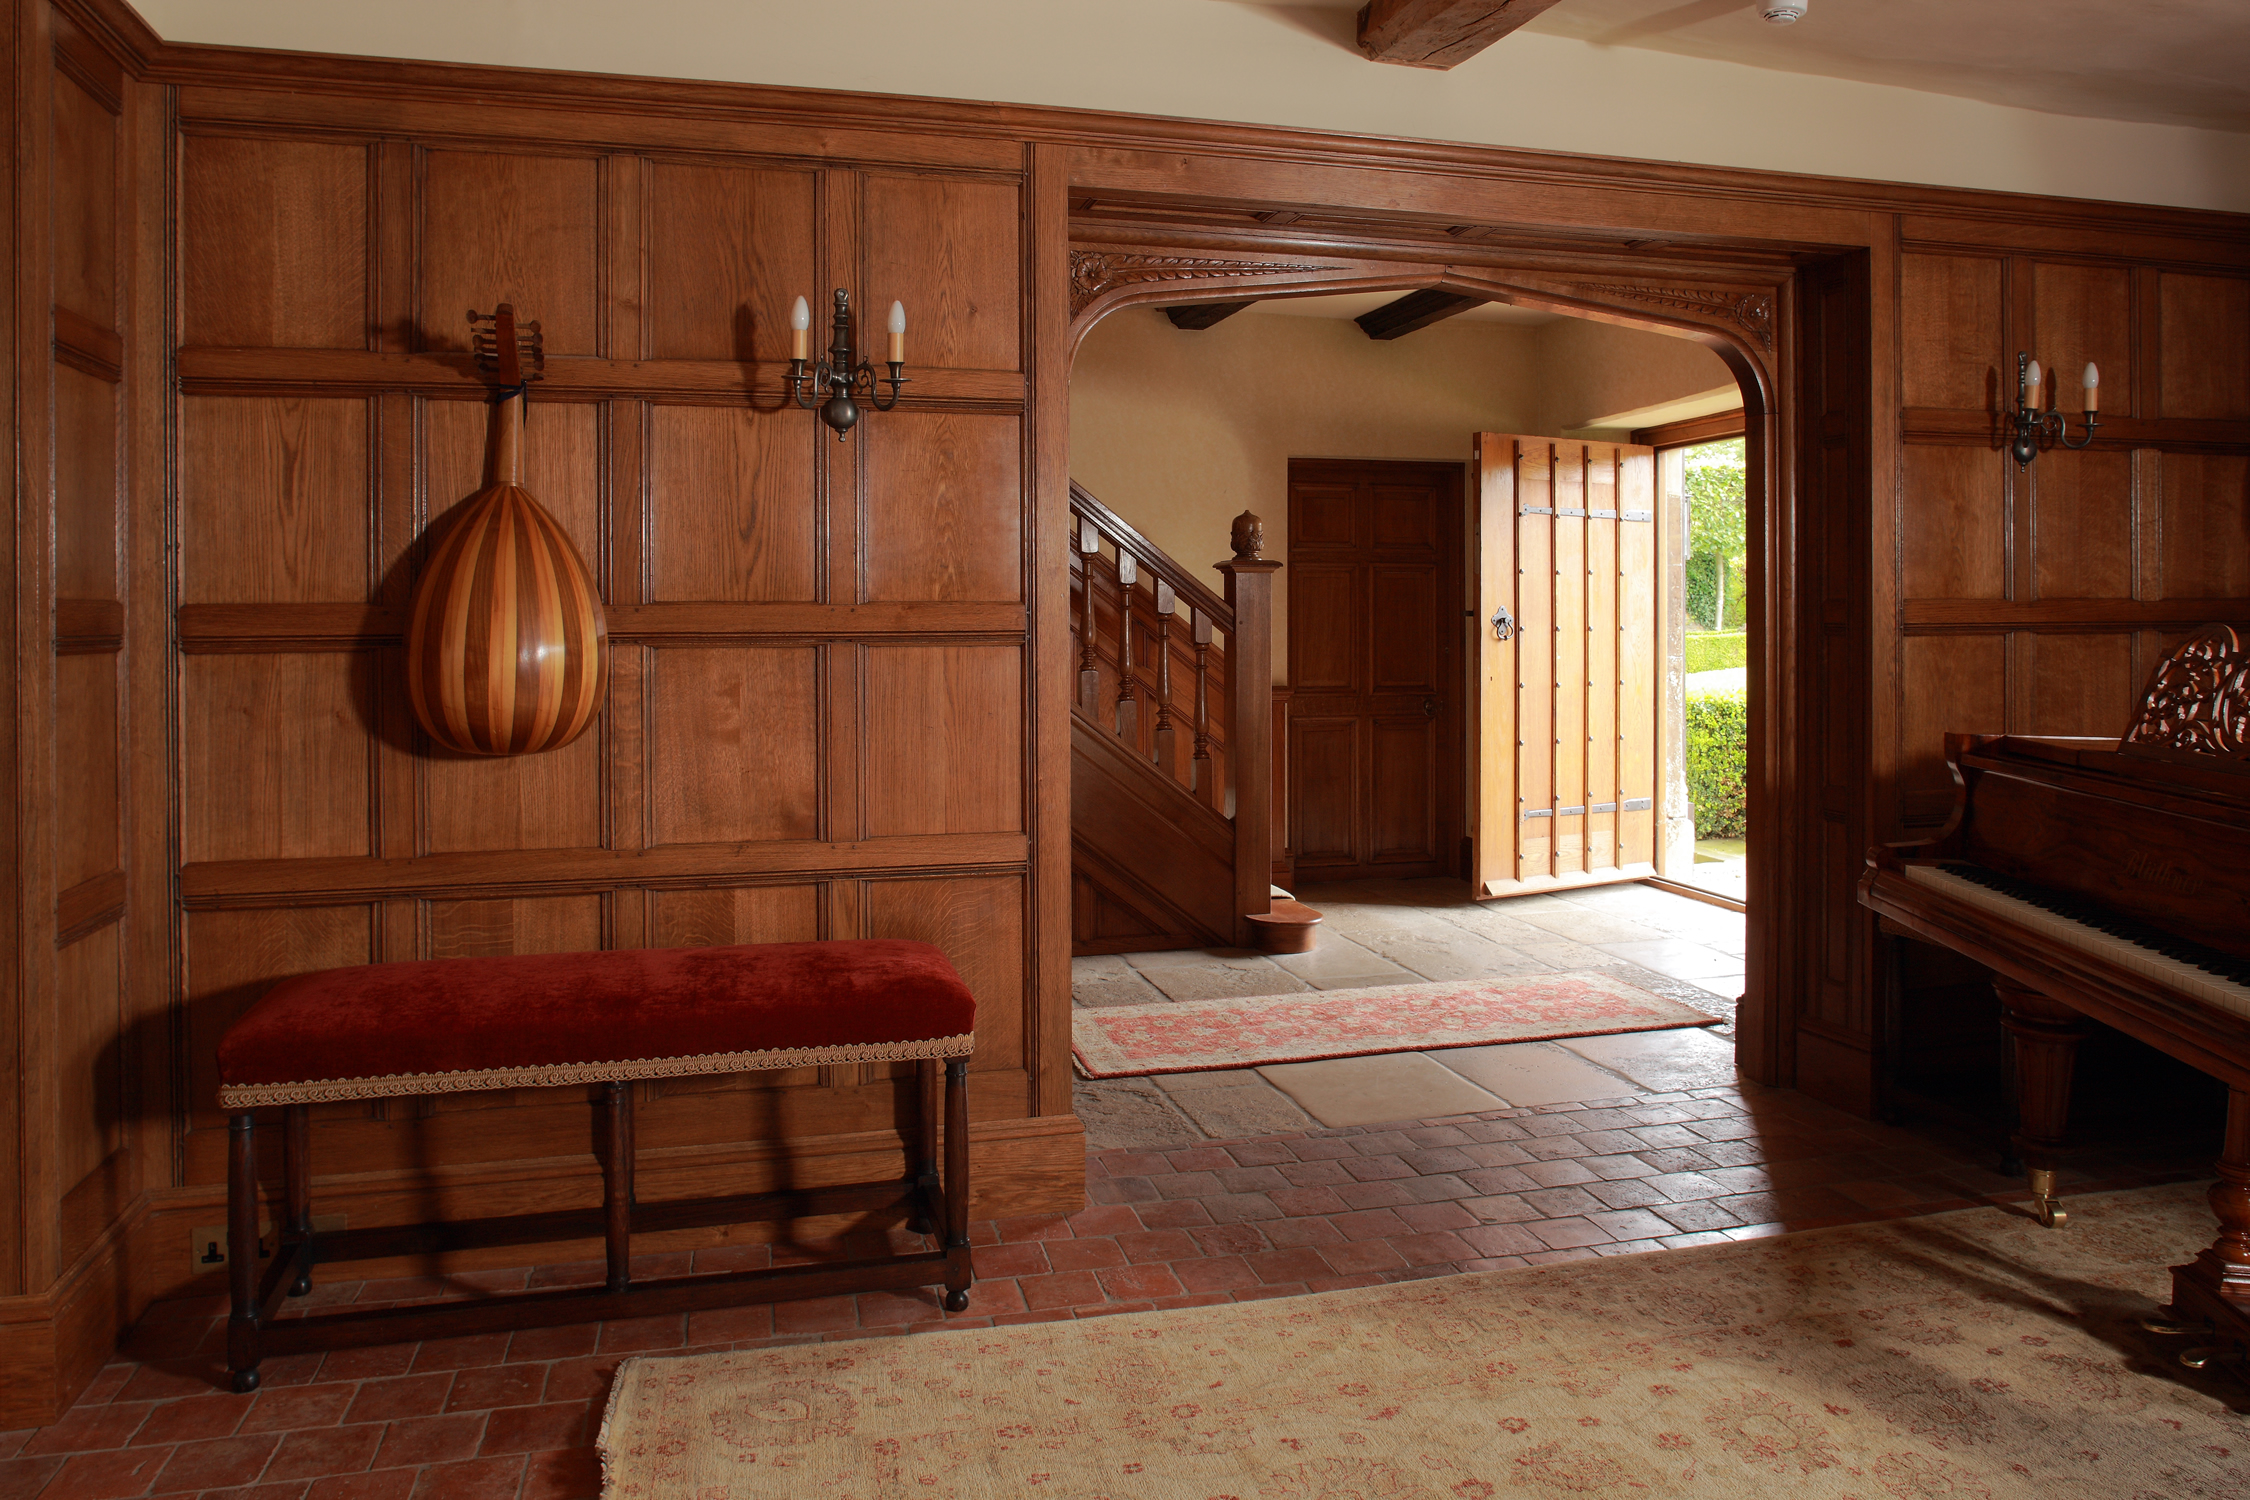 C17th style Tudor arched opening